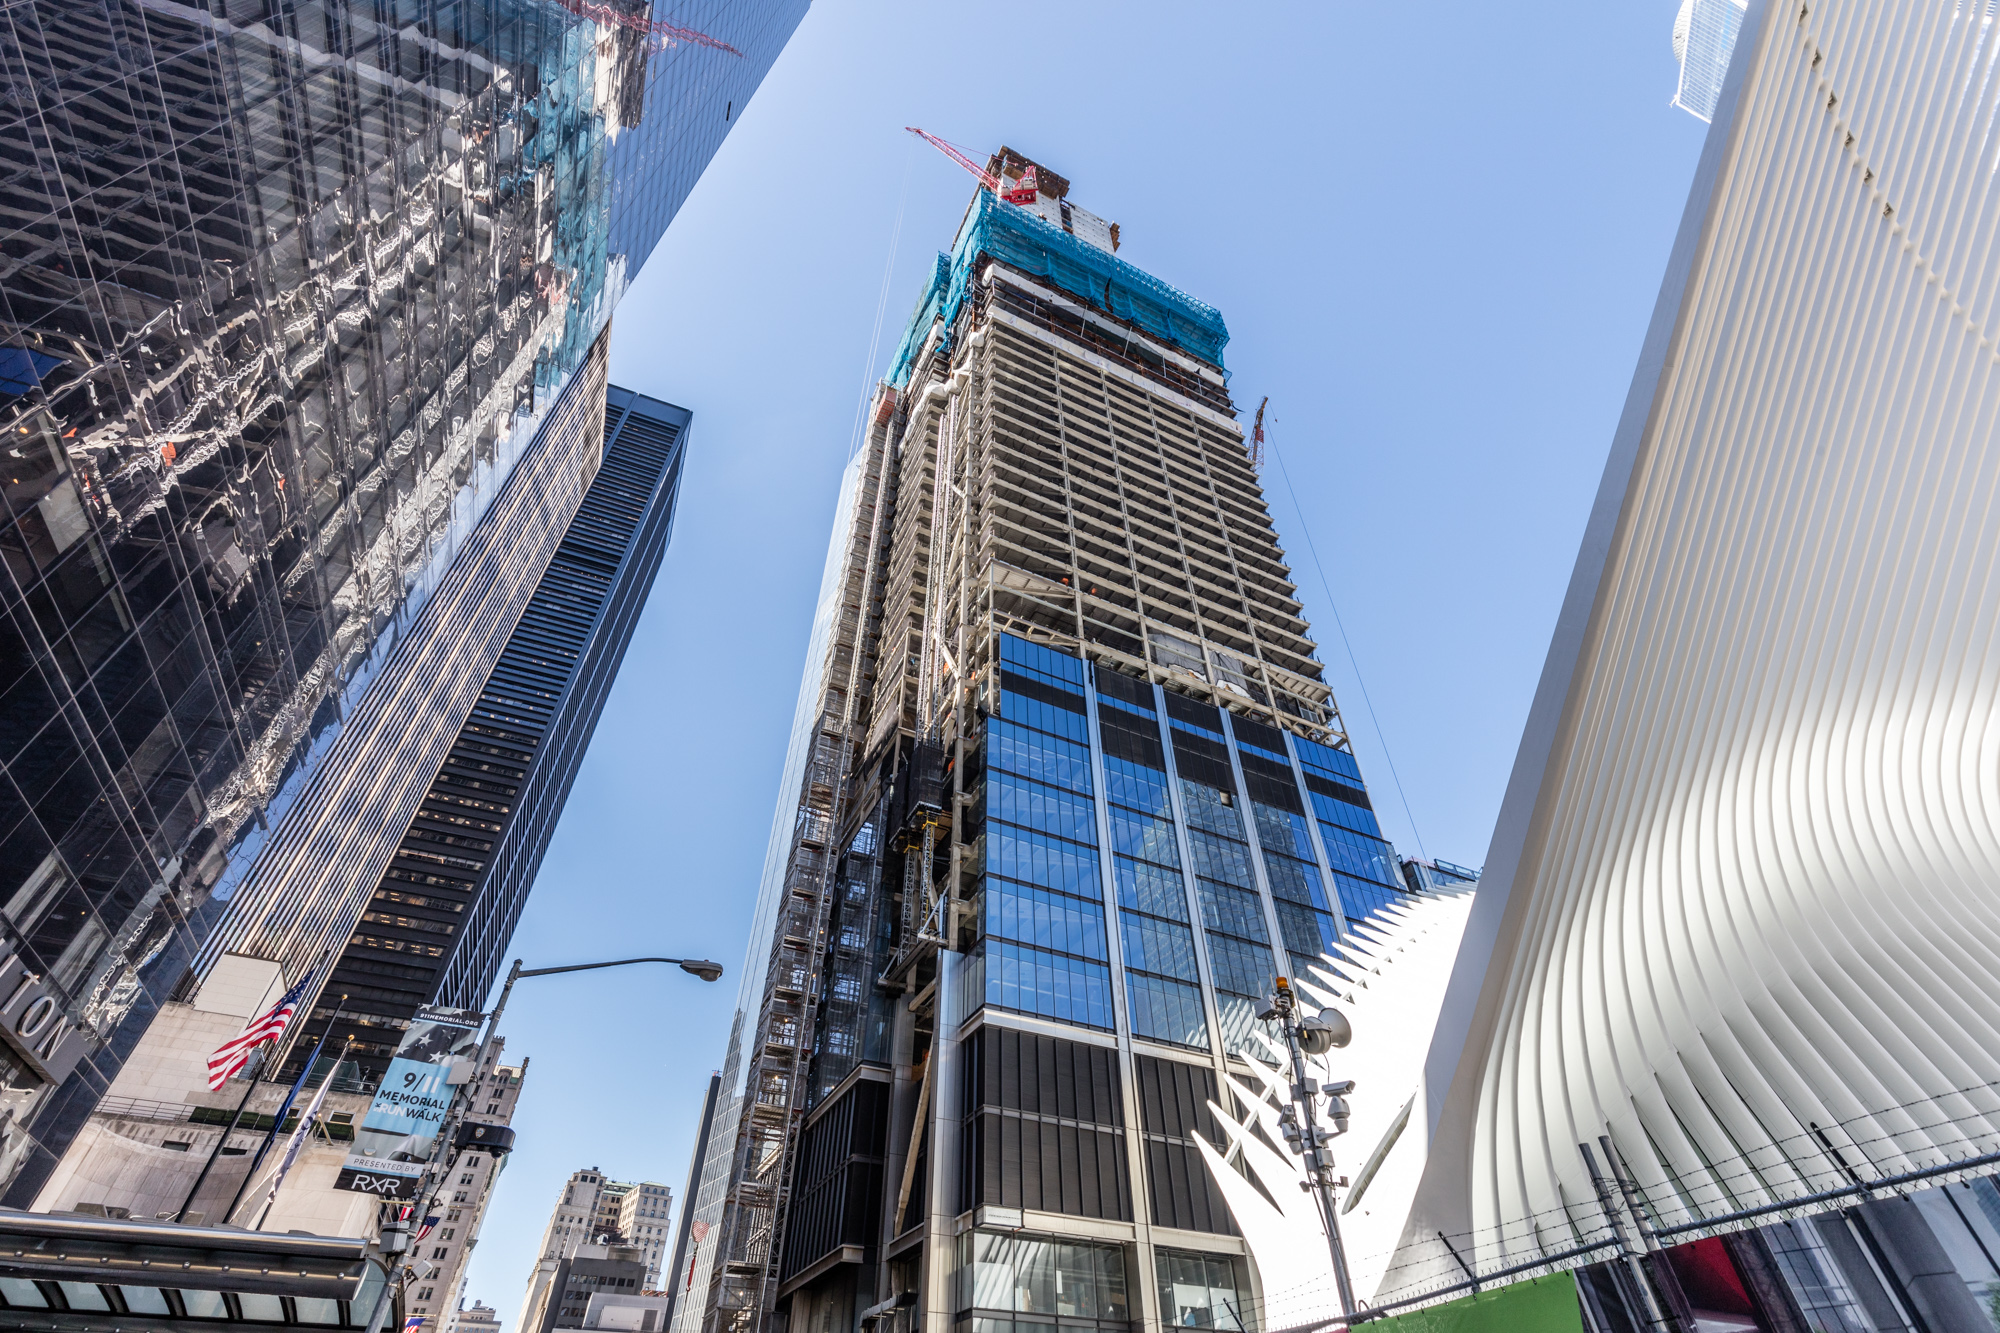 The under-construction 3 World Trade Center is the third tallest building at the site and will stand at 1,079 feet when it is complete.